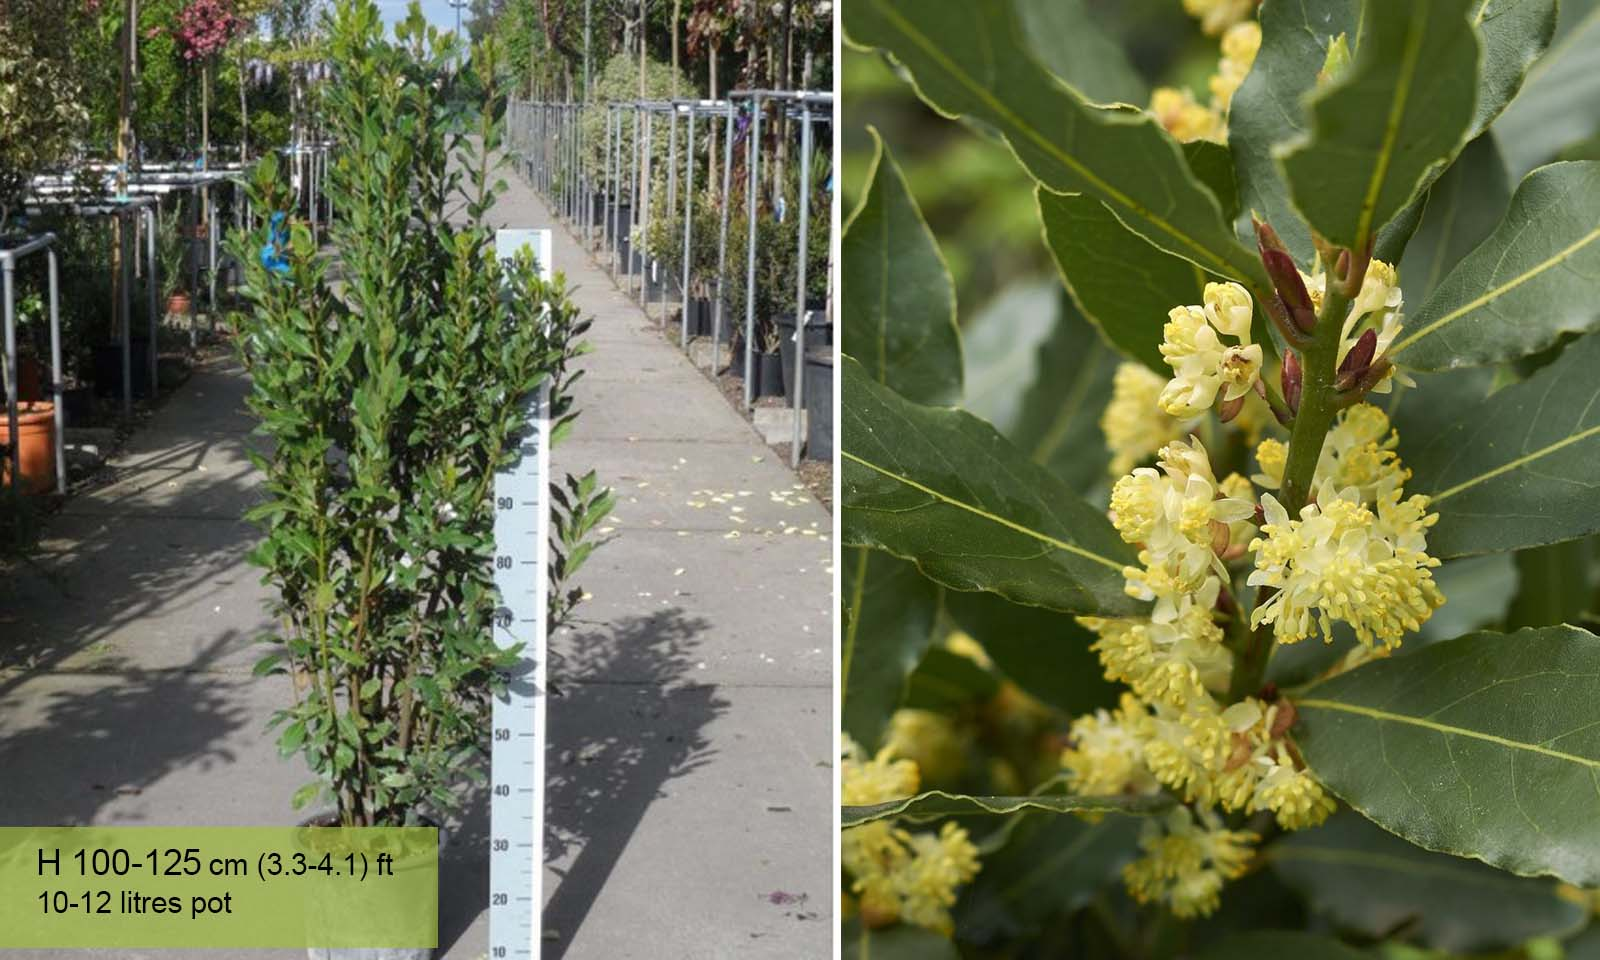 Laurus Nobilis (Bay Tree) – Shrub